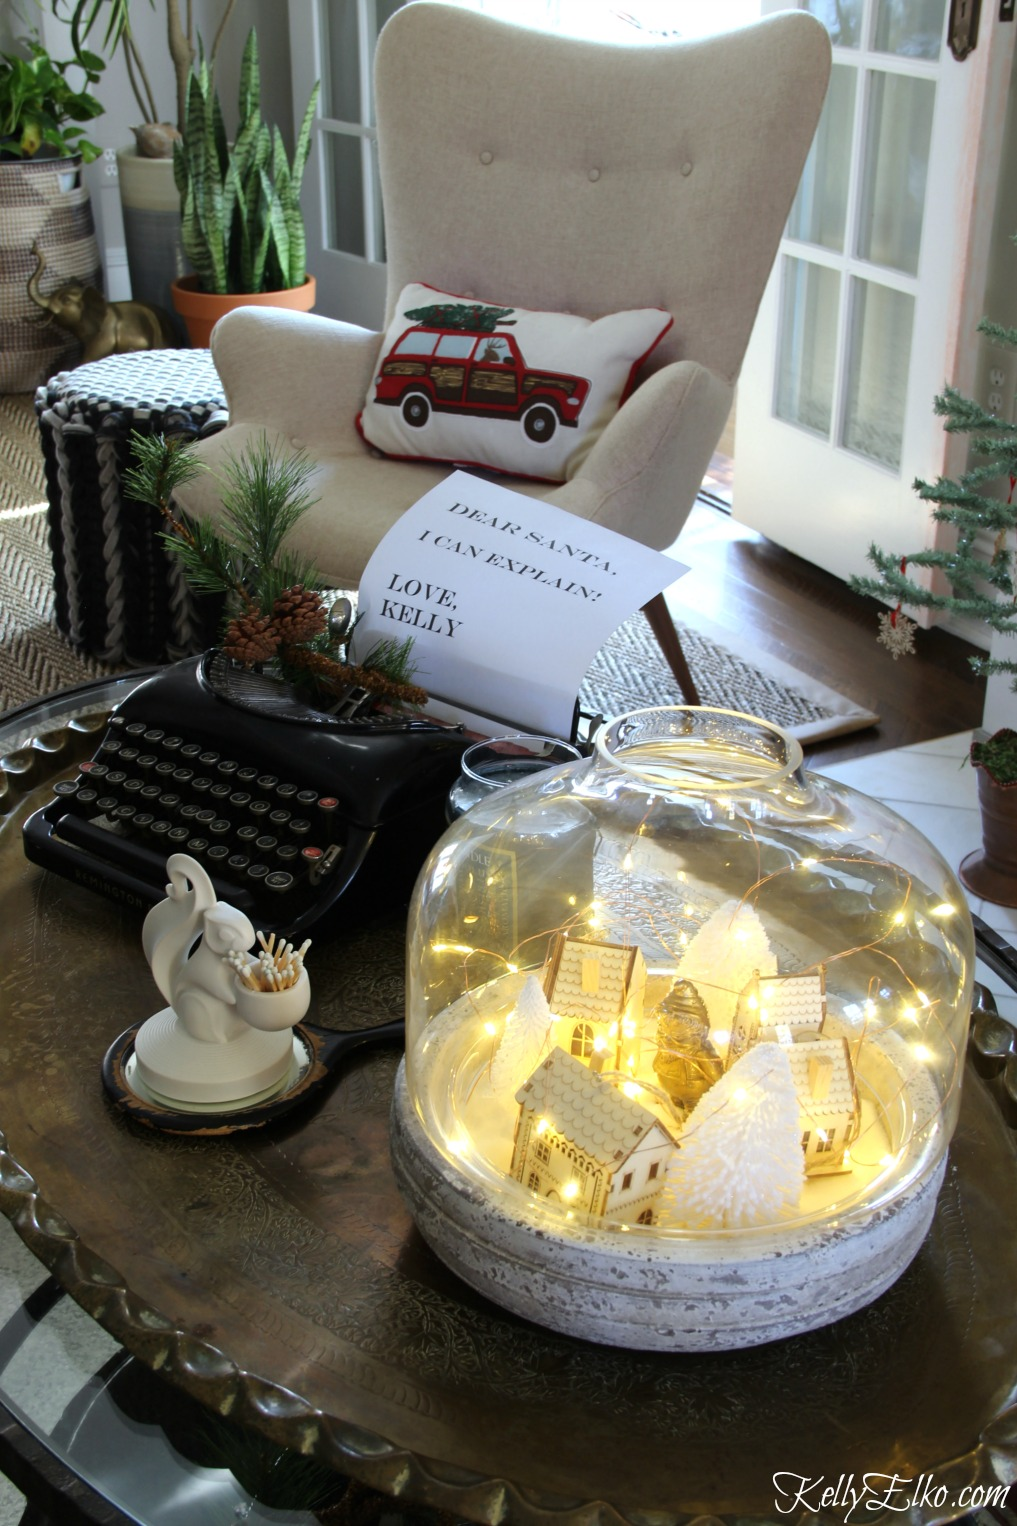 Christmas Home Tour - love this snowy scene in a jar of fairy lights kellyelko.com